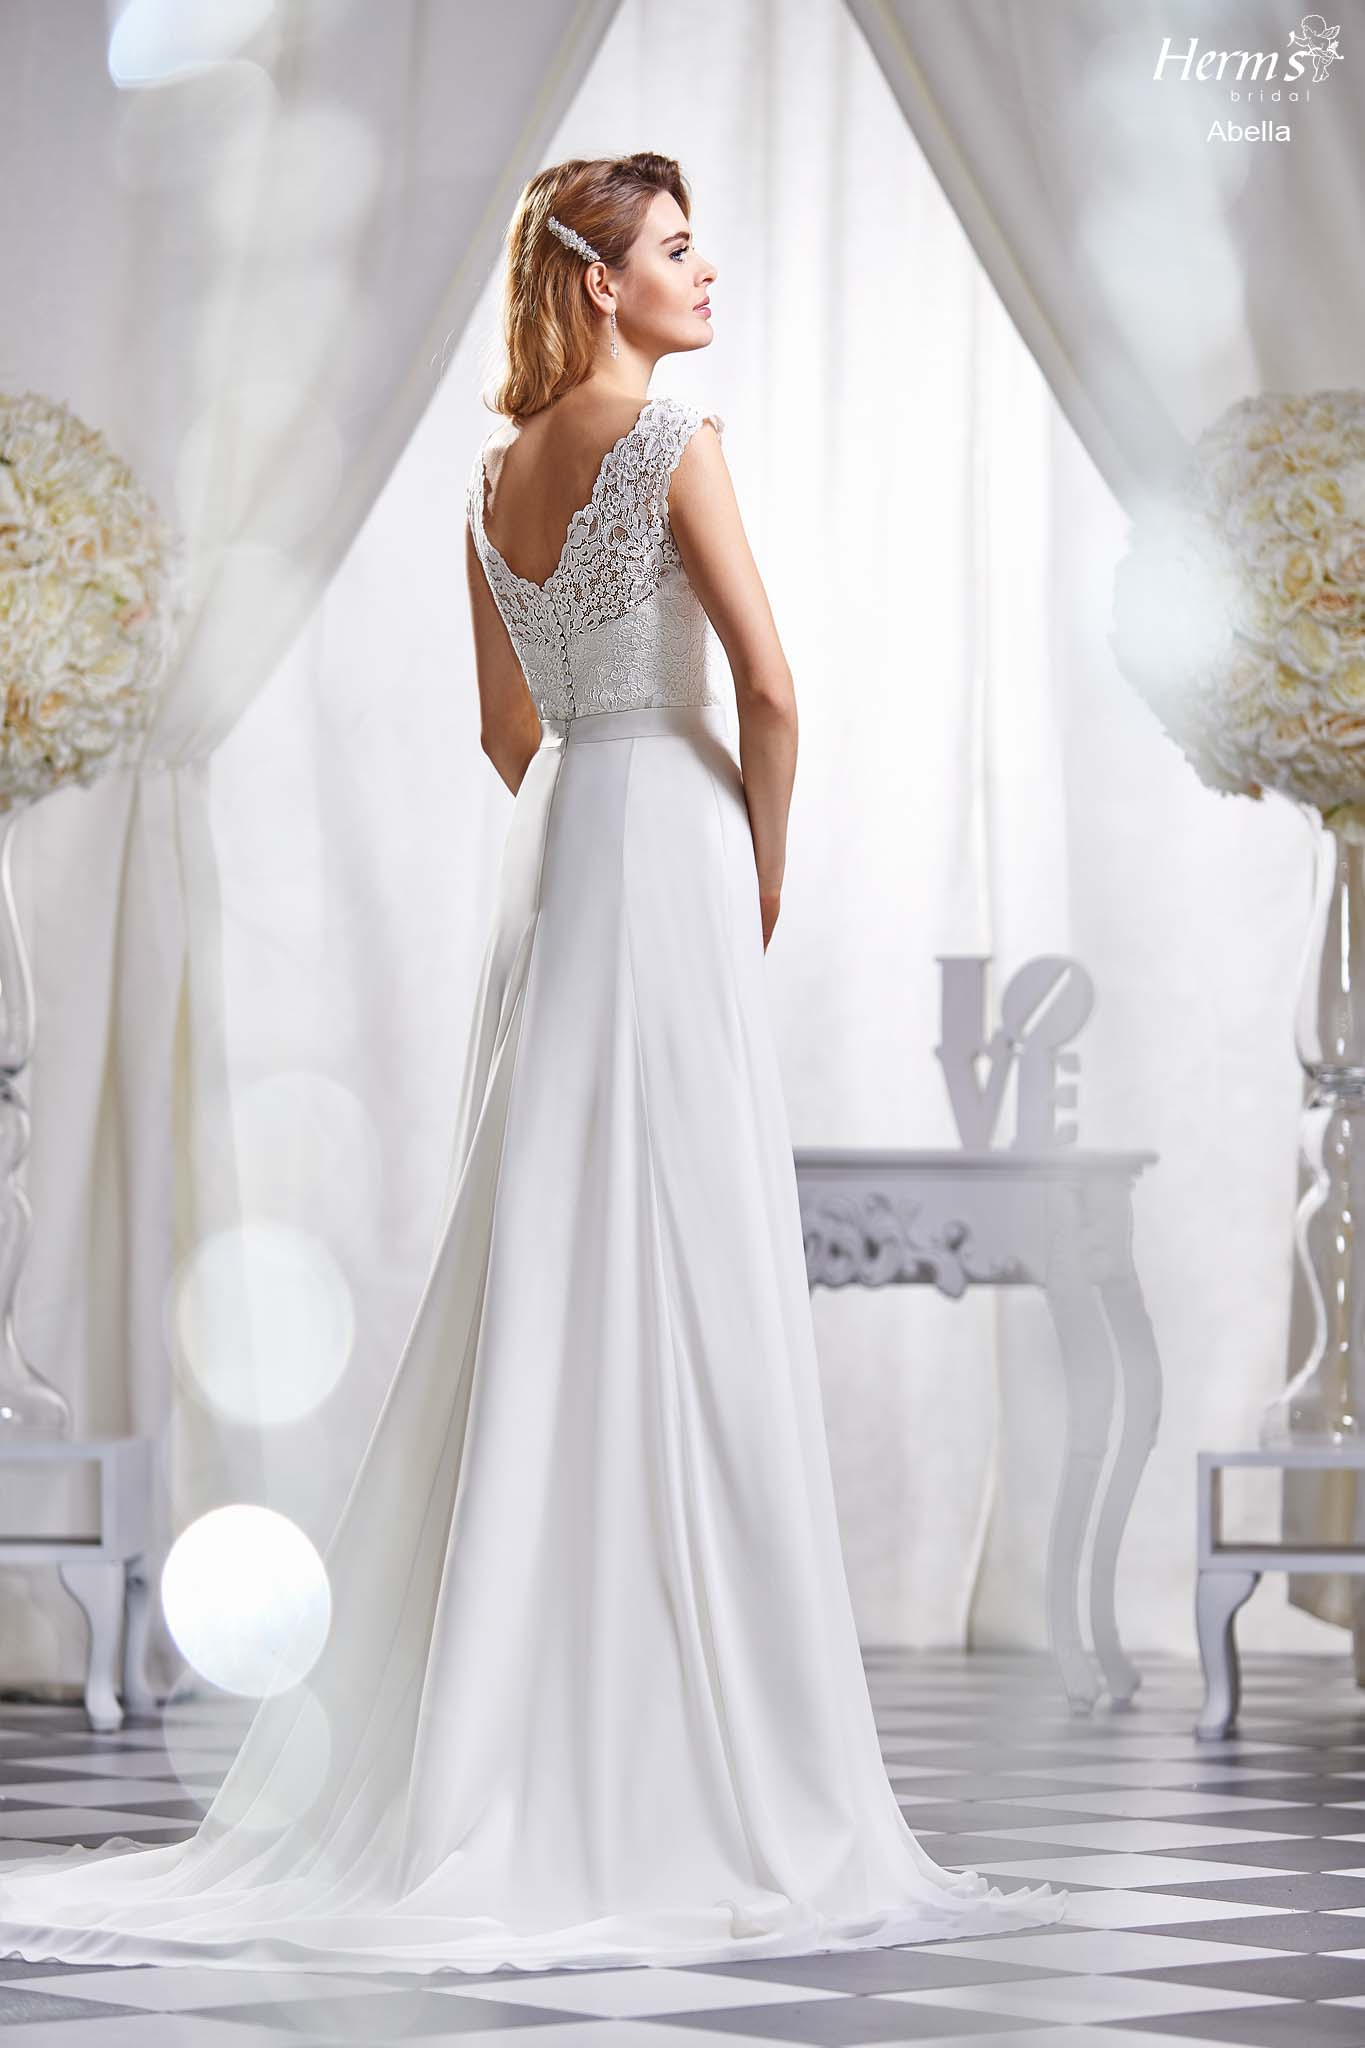 wedding dress Herm's Bridal Abella